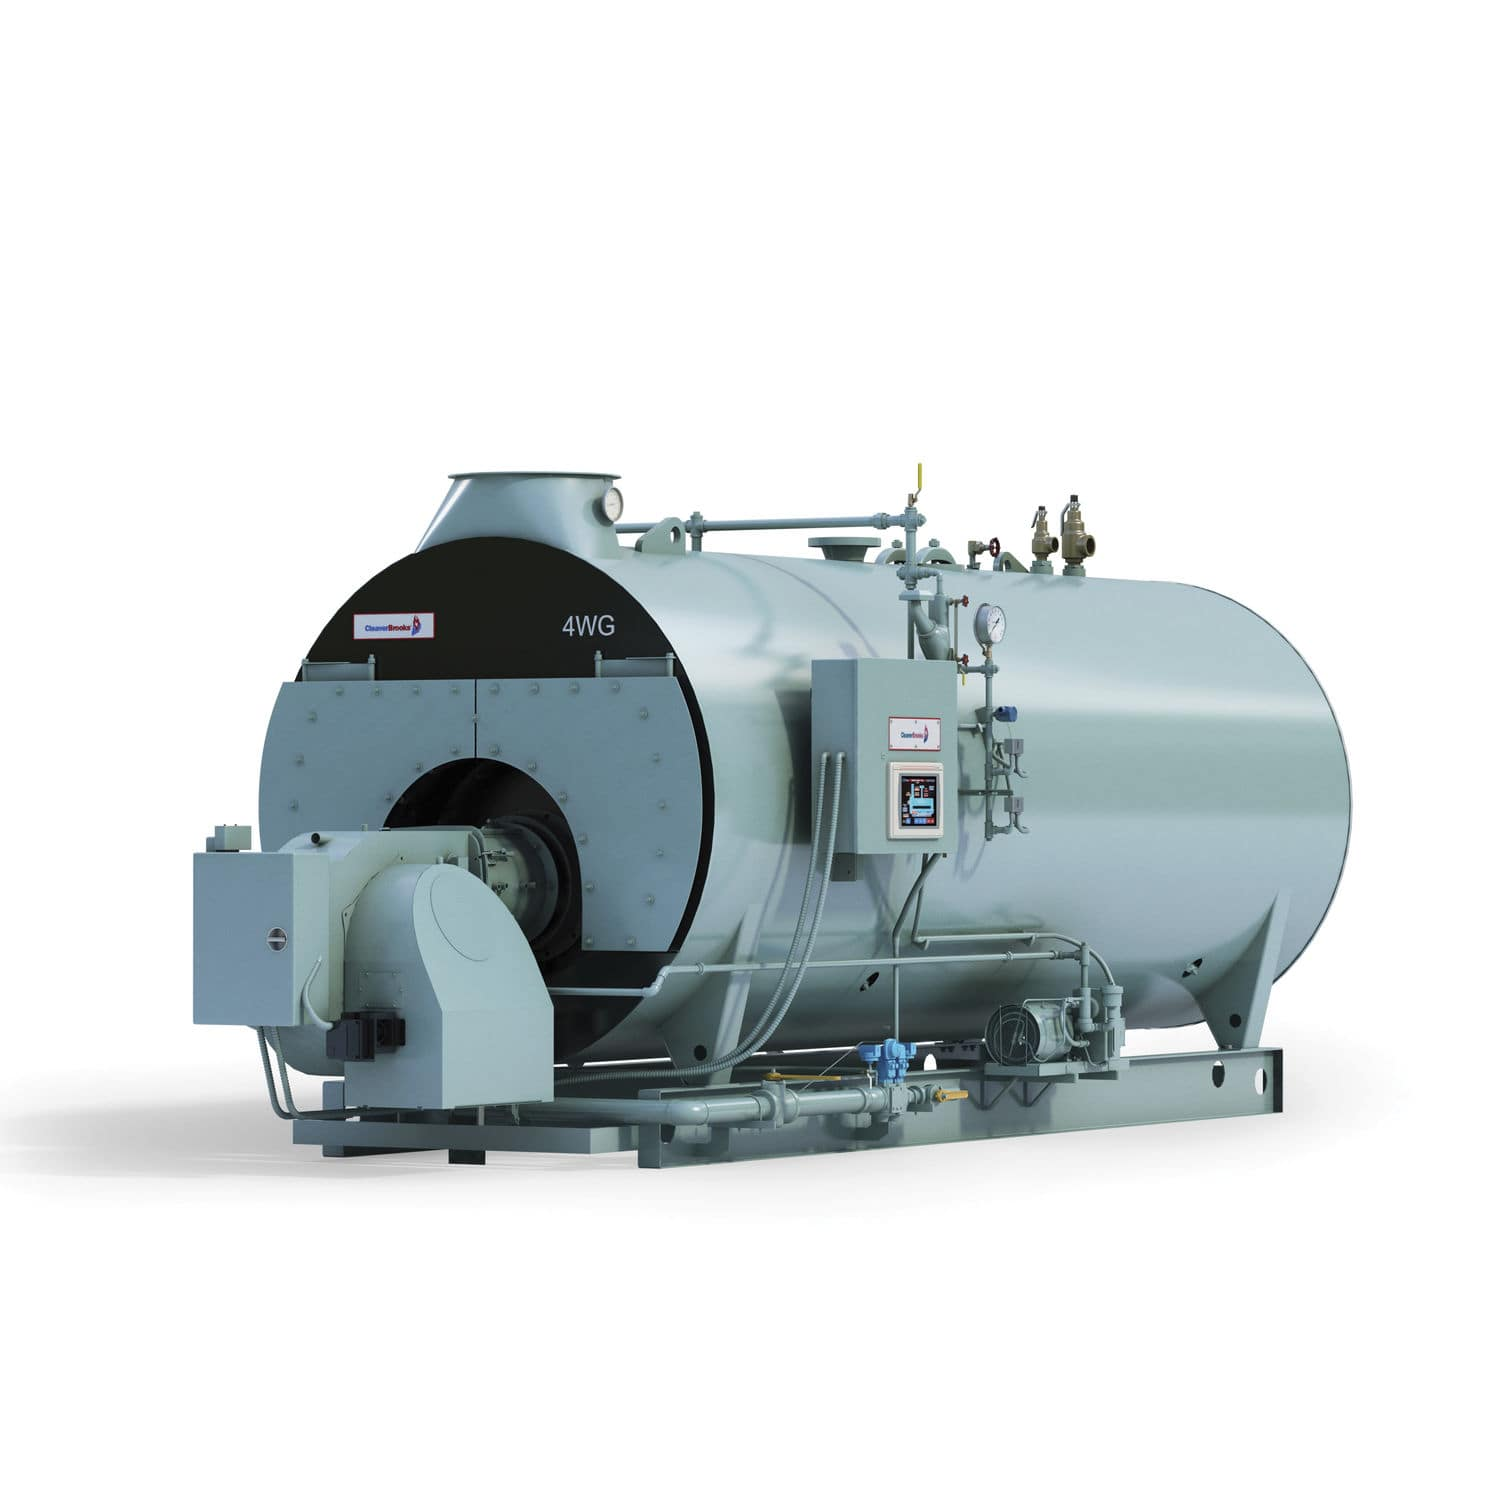 Steam boiler / hot water / fuel oil / natural gas - 4WG - Cleaver-Brooks